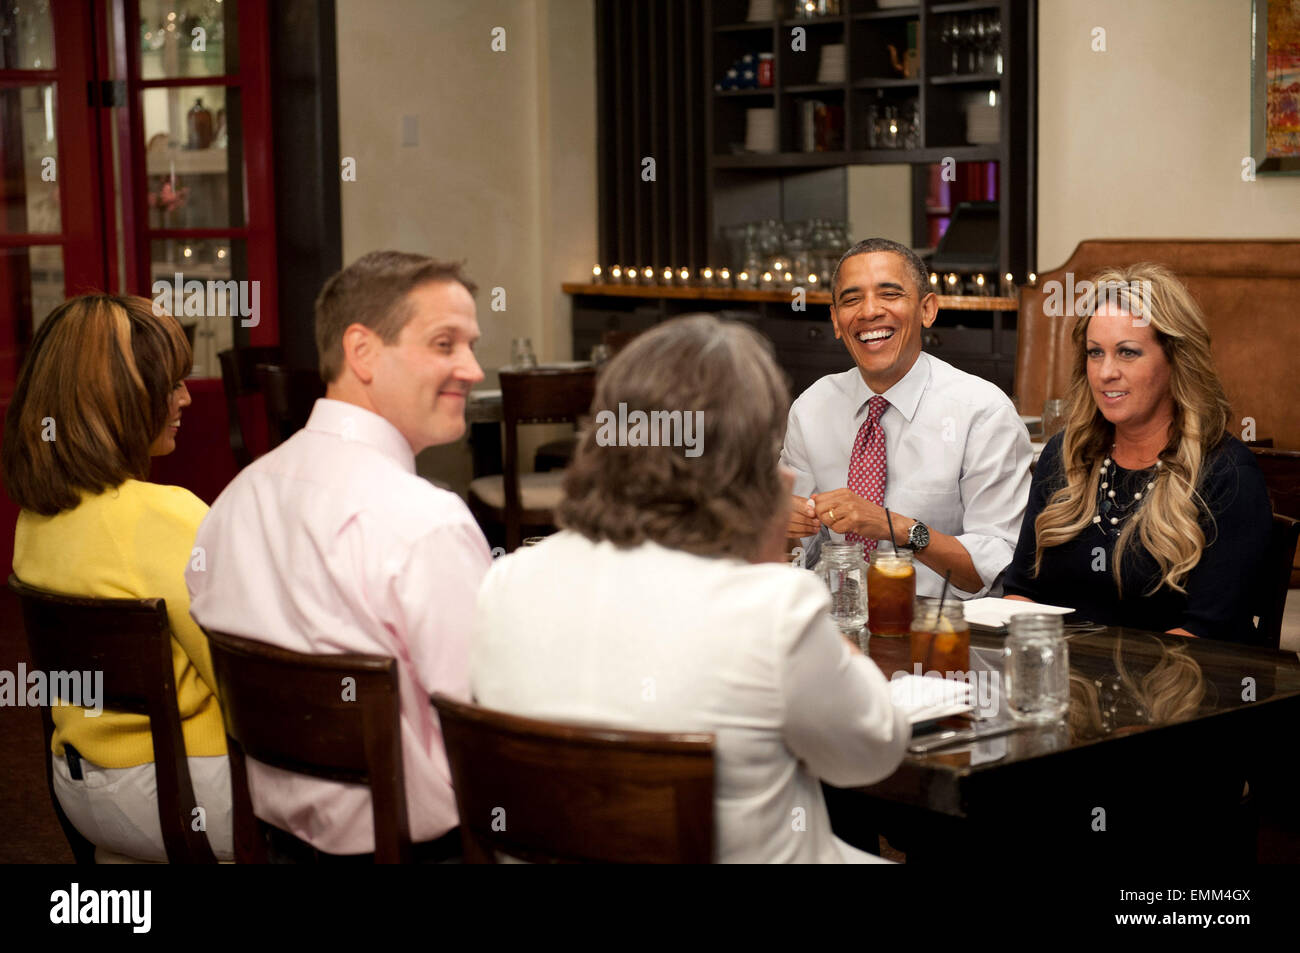 15.JUNE.2012. WASHINGTON  THE ASSOCIATED PRESS REPORTS THAT OBAMA SHARED LUNCH WITH FOUR WINNERS OF HIS 'LUNCH - Stock Image